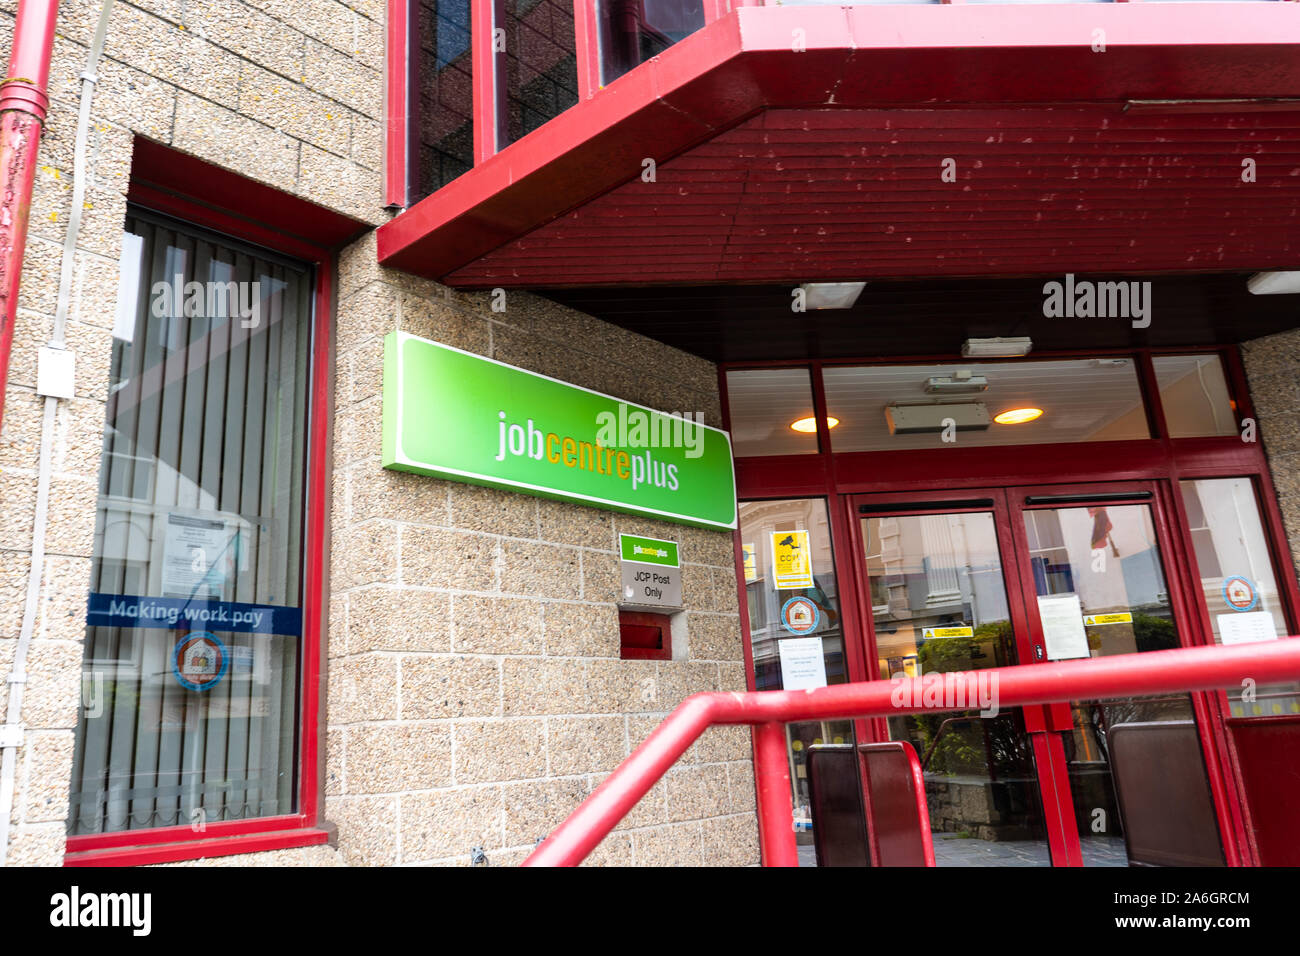 Job centre plus in the highstreet of Penzance, unemployment centre, on the doll Stock Photo